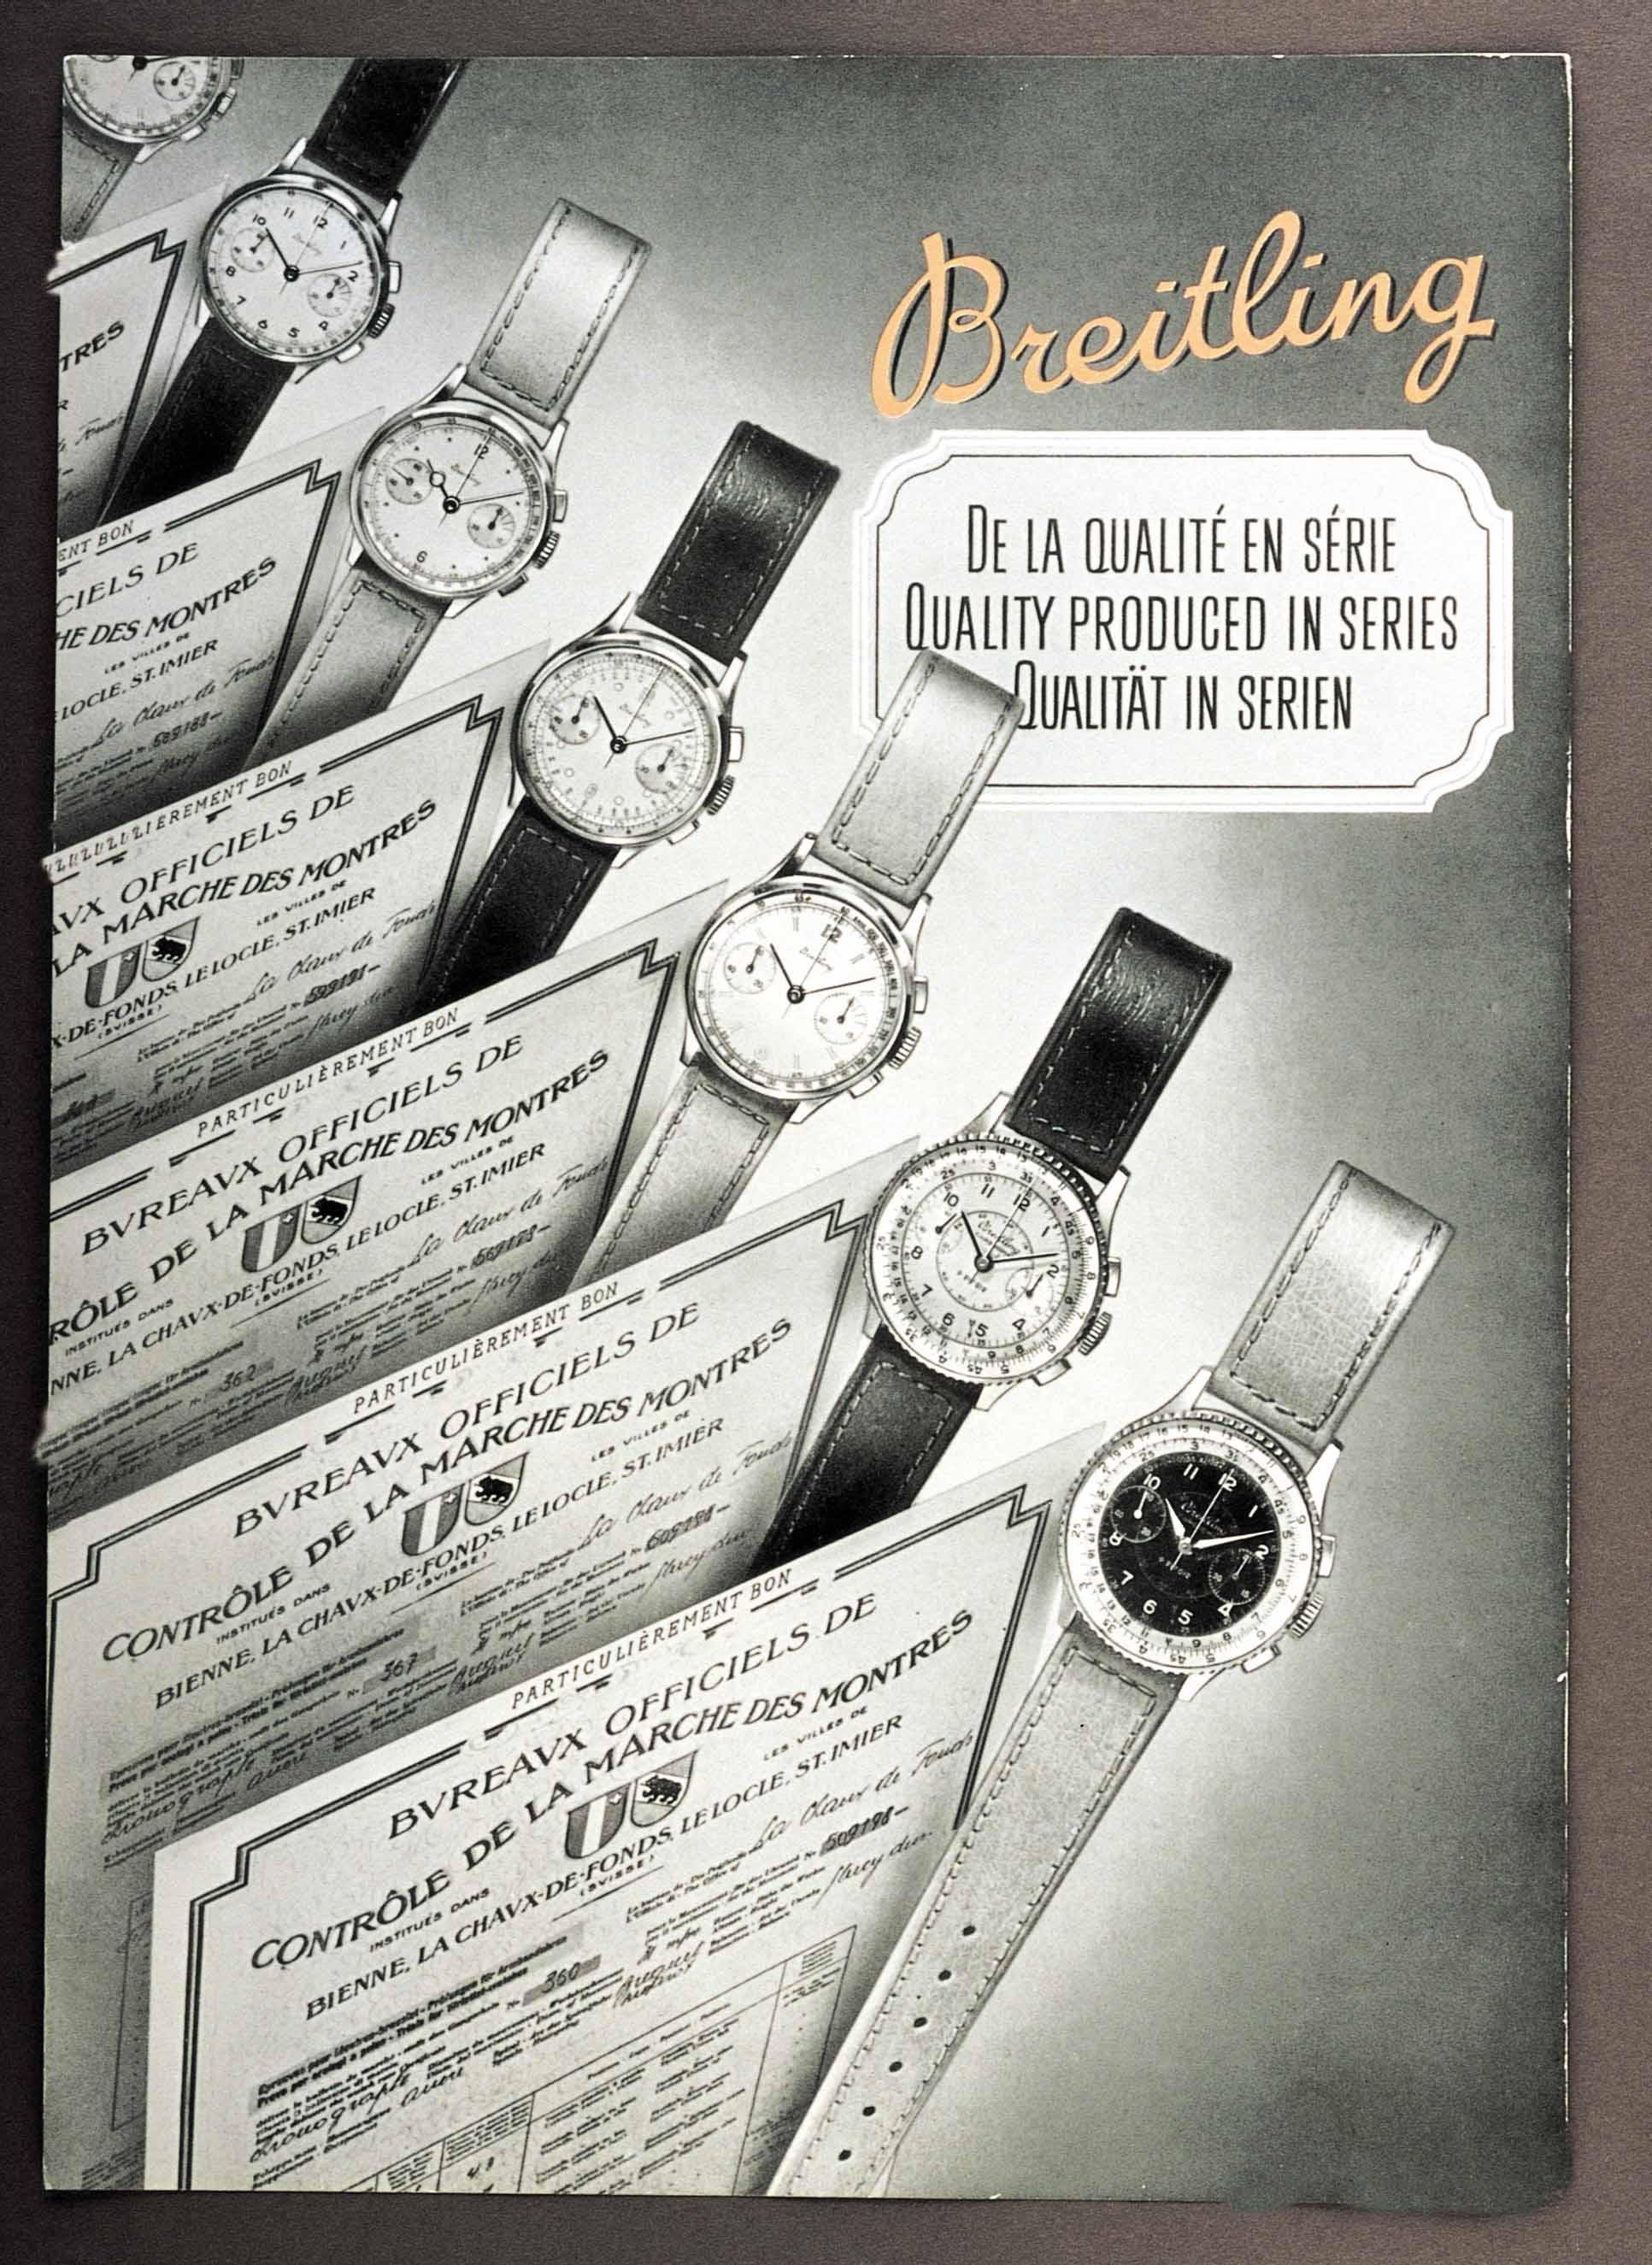 02_Quality_produced_in_series_advertisement_1946.jpg